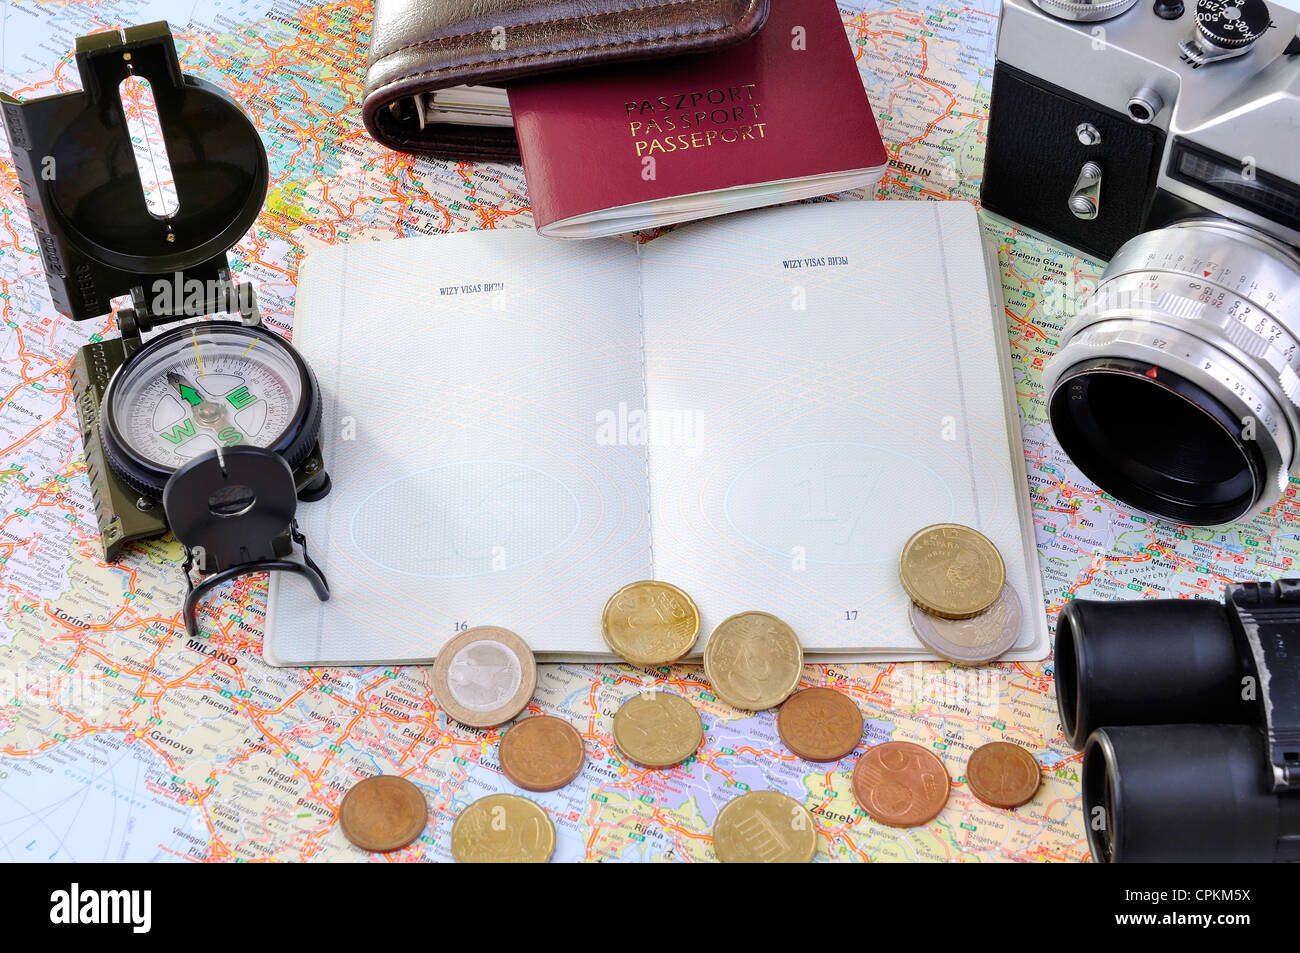 a group of travel related items on a map - Stock Image